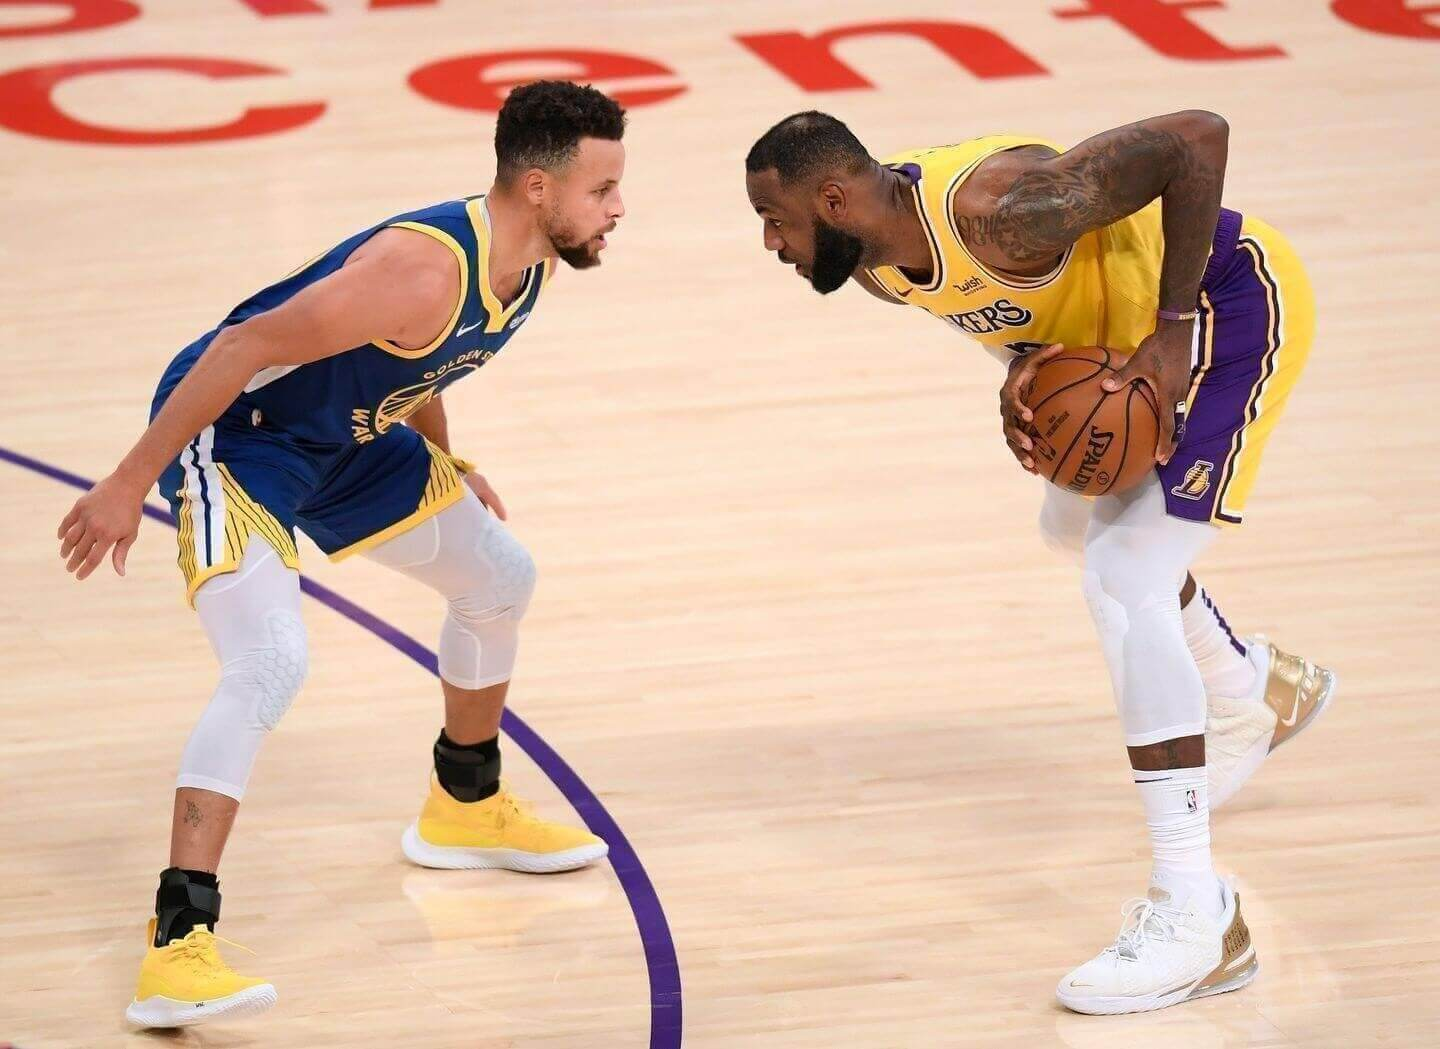 NBA Playoffs and Play-In matchups set: Live updates, final scores, standings and clinch scenarios